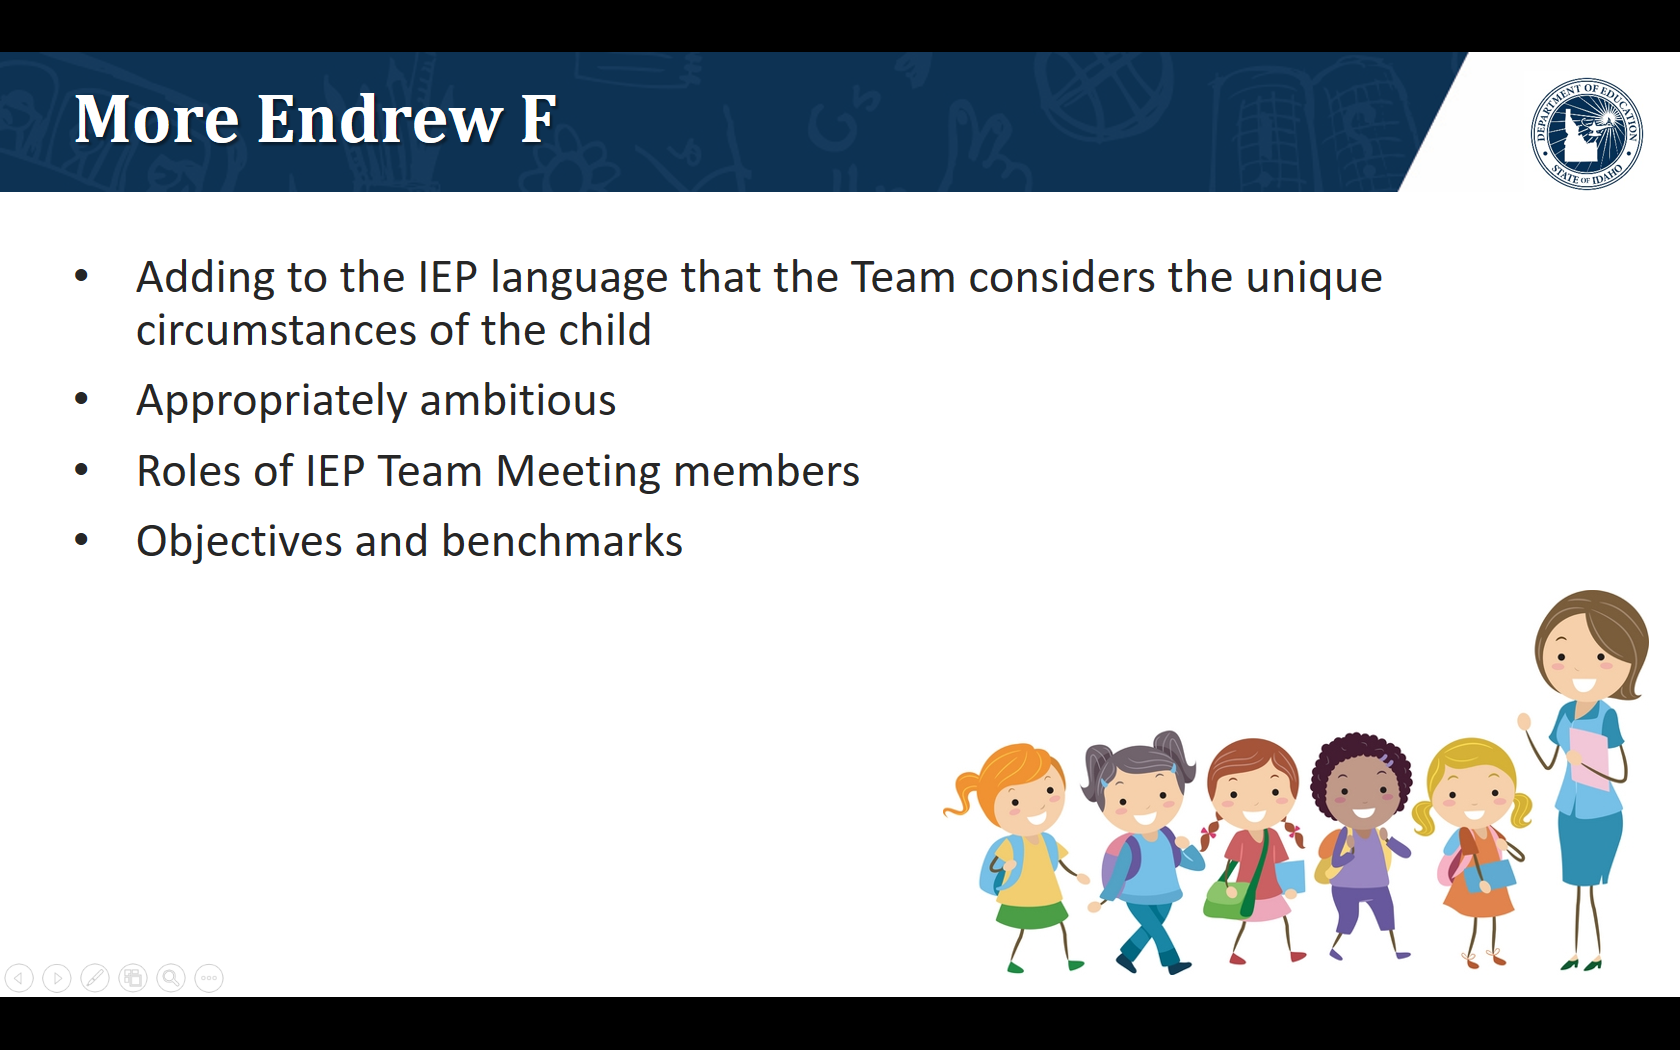 Adding to the IEP language that the Team considers the unique circumstances of the child. Appropriately ambitious. Roles of IEP Team Meeting members. Objectives and benchmarks.